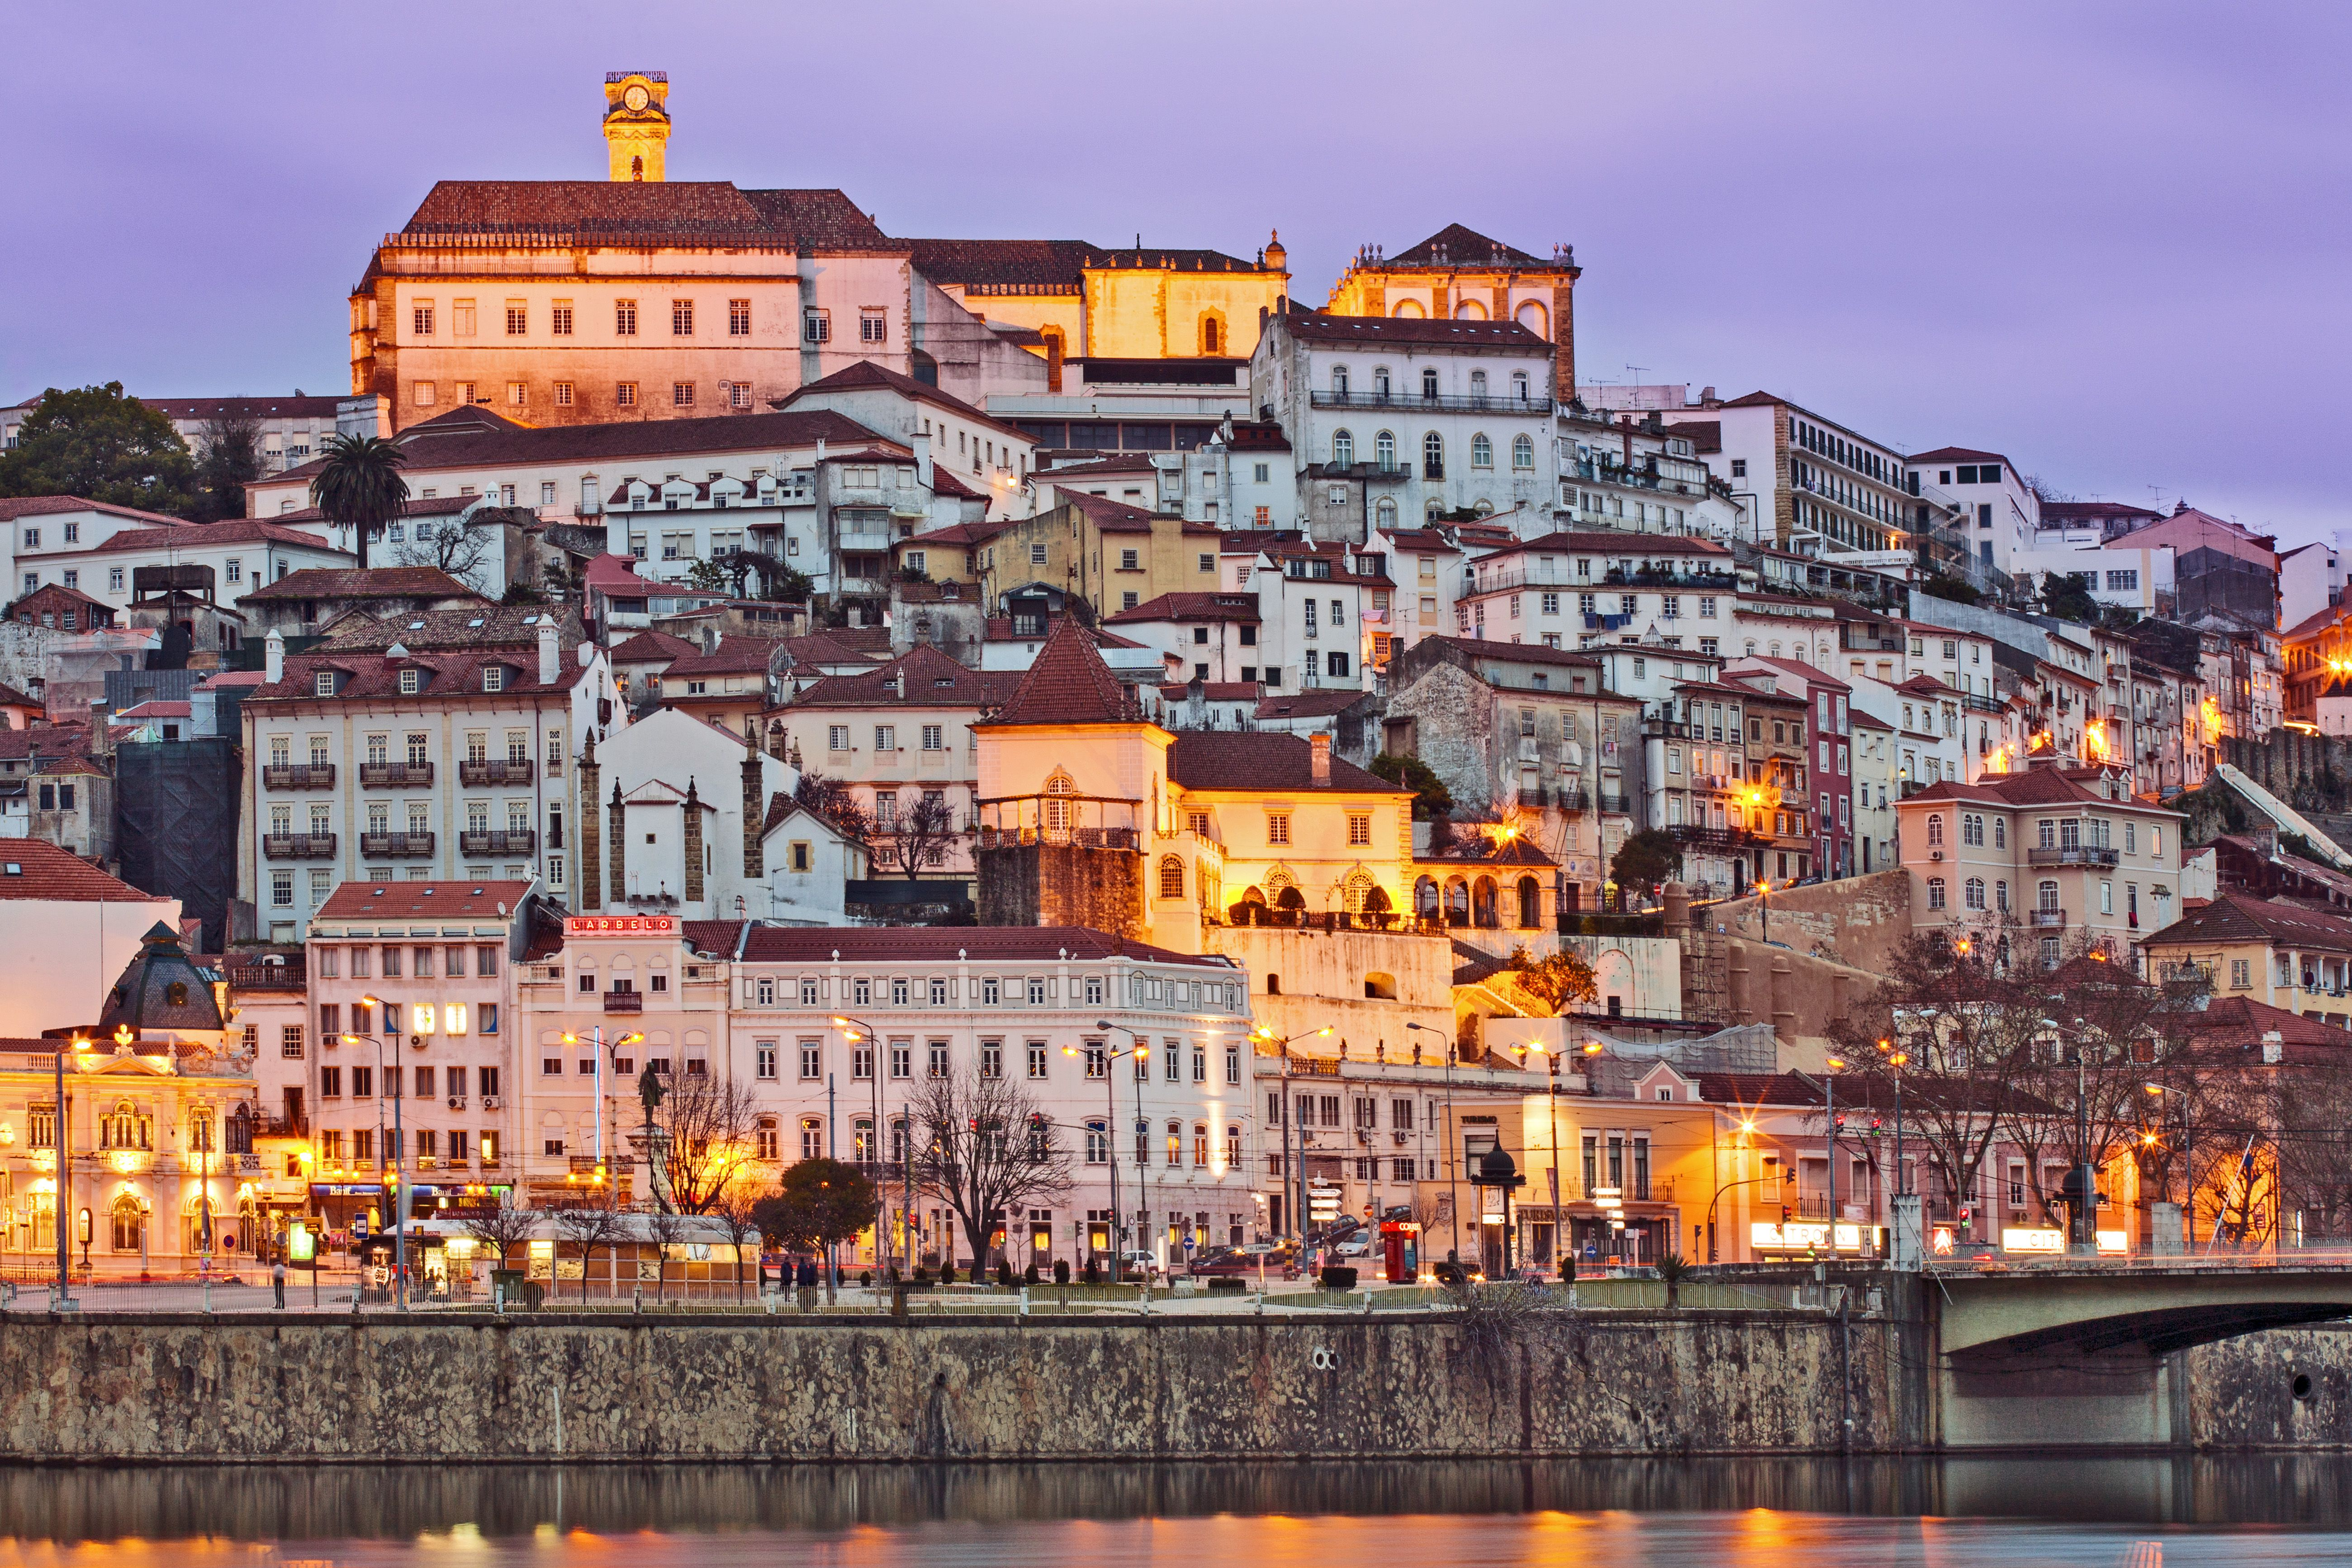 Portugal, Centro, Baixo Mondego, Coimbra, Twilight view of medieval city centre, UNESCO World Heritage listed University of Coimbra-Alta and Sofia (crowning hill), and Mondego river